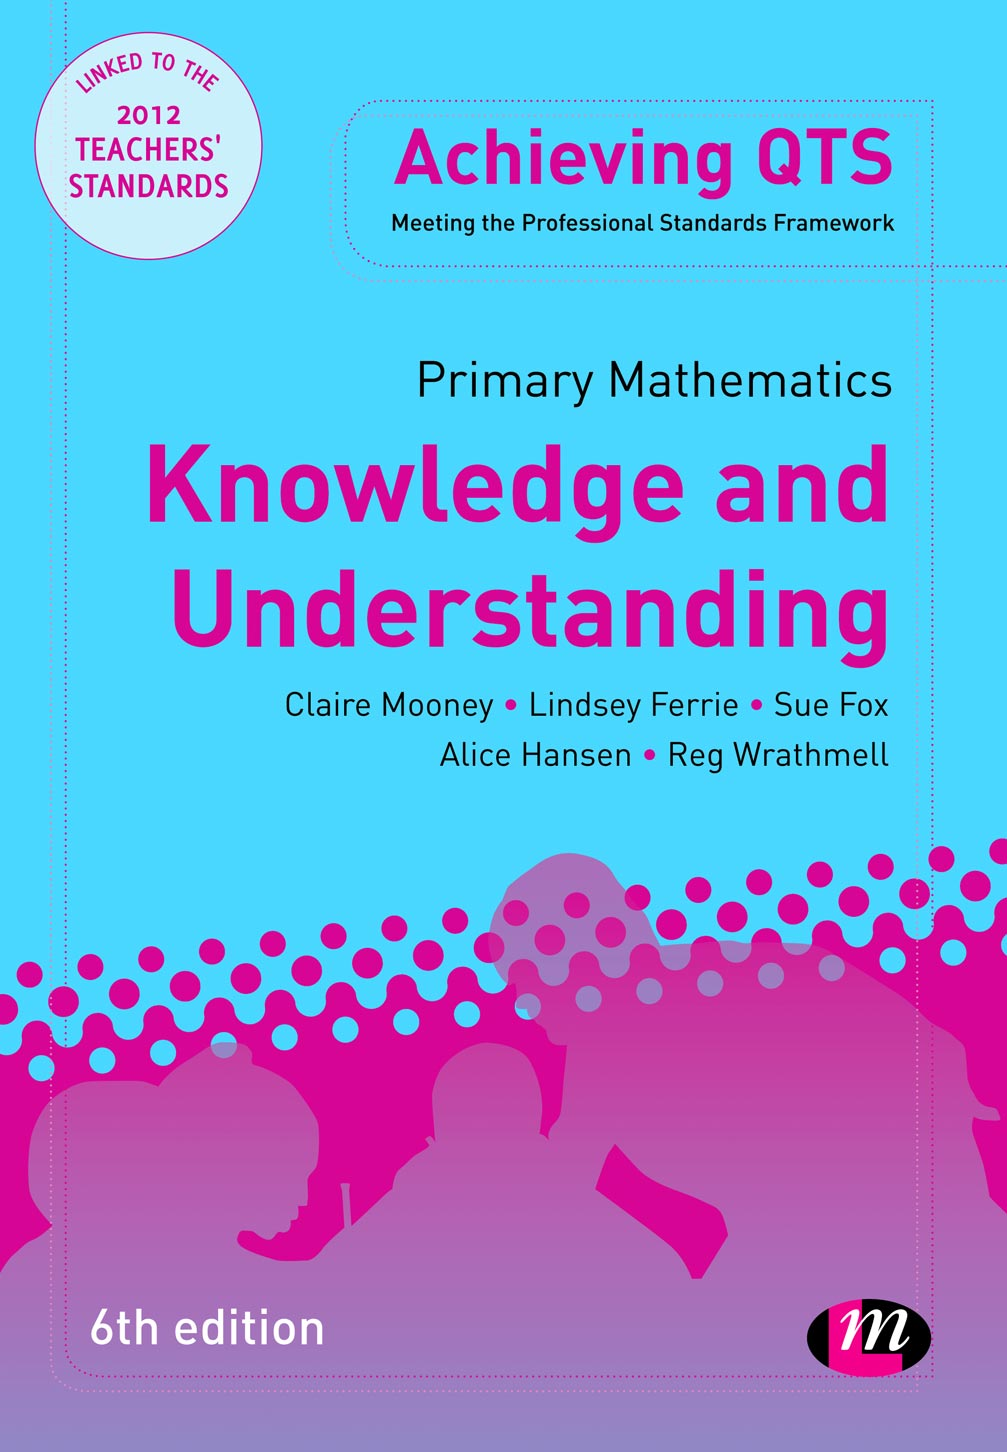 Primary Mathematics: Knowledge and Understanding